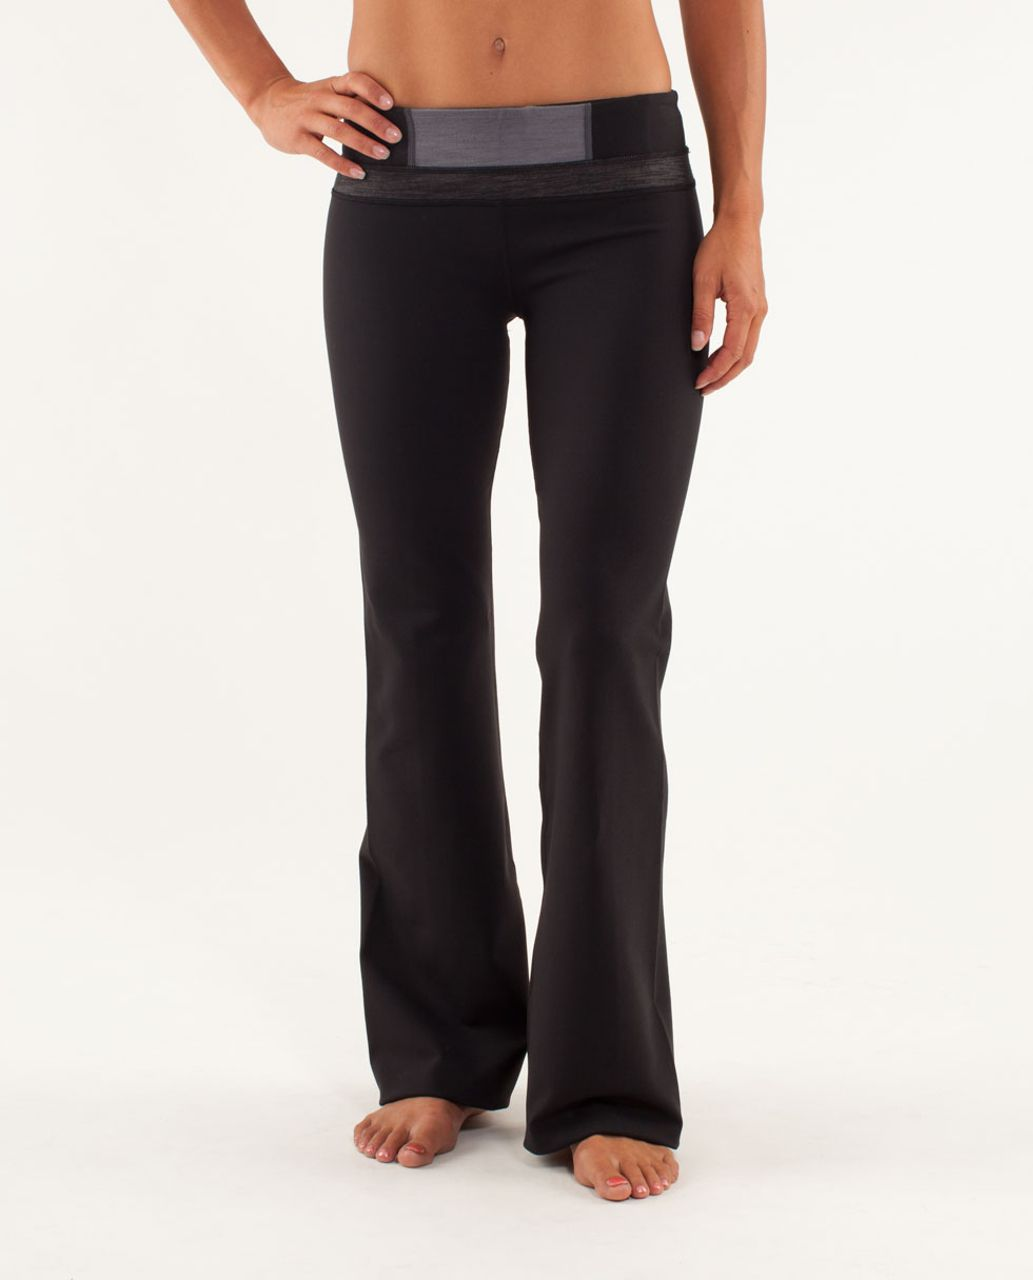 Lululemon Groove Pant (Regular) - Black / Fall 12 Quilt 12 / Black Slub Denim